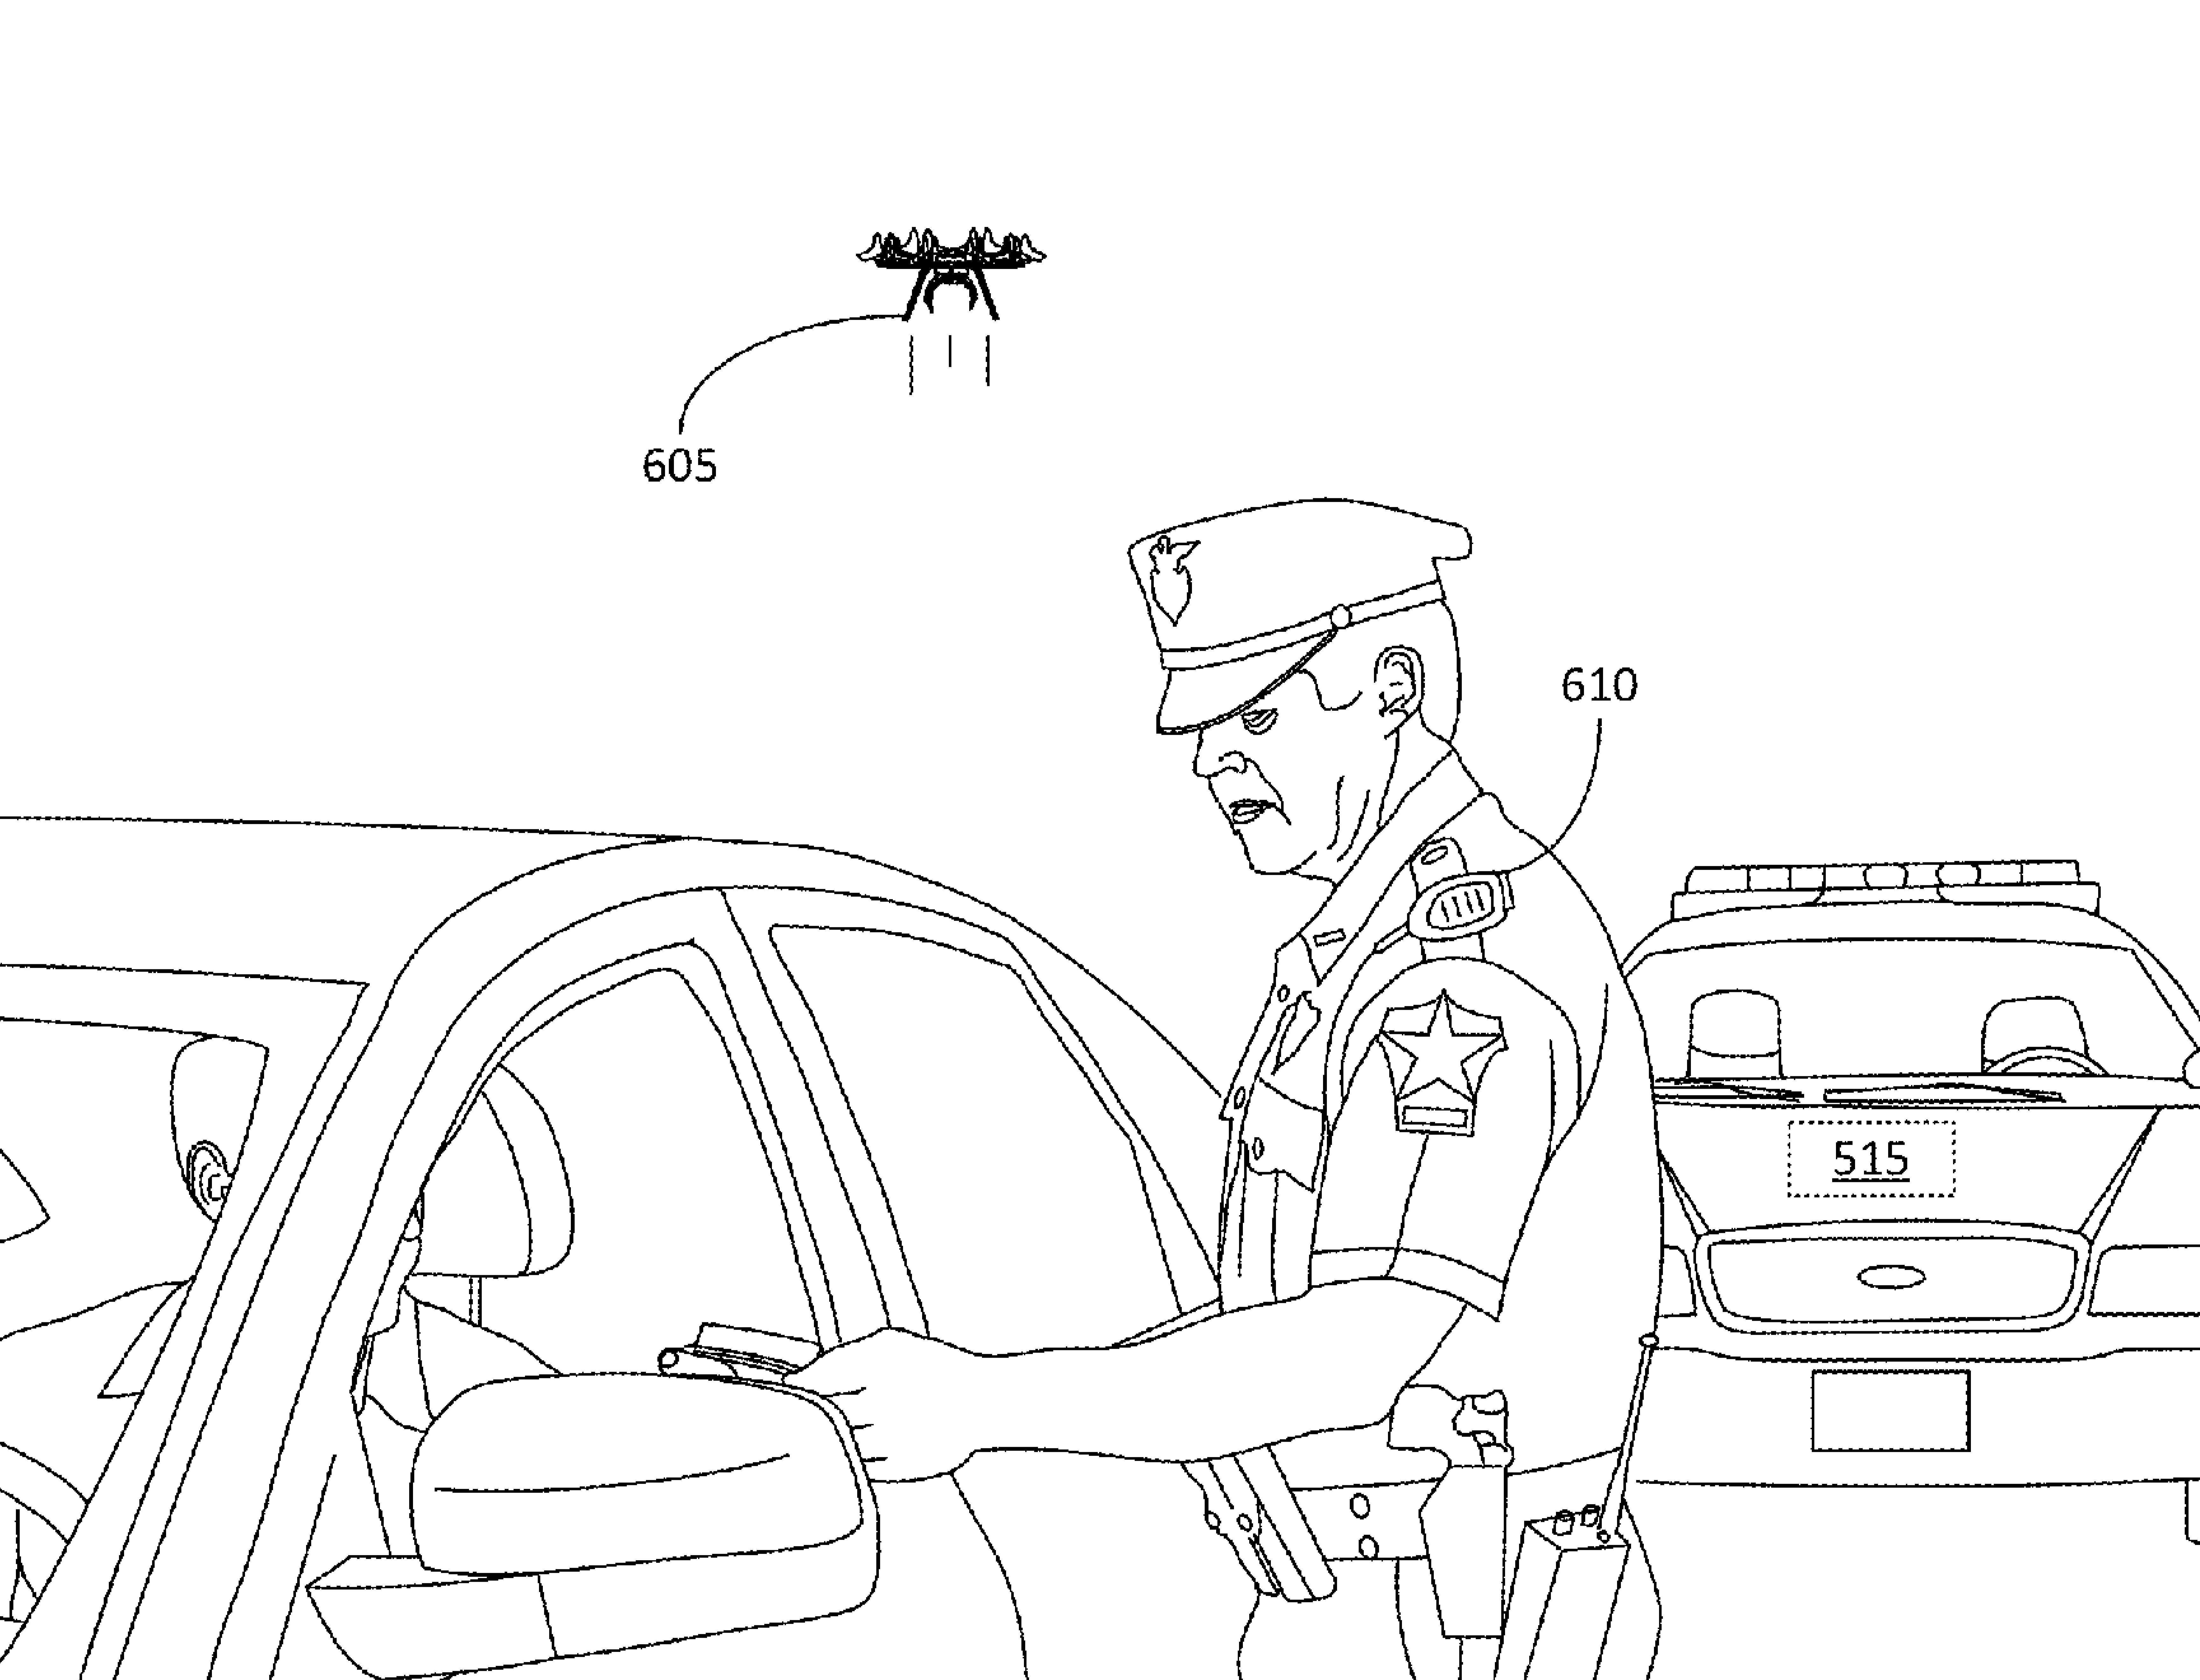 New Patent Expands Amazon Drone Plan